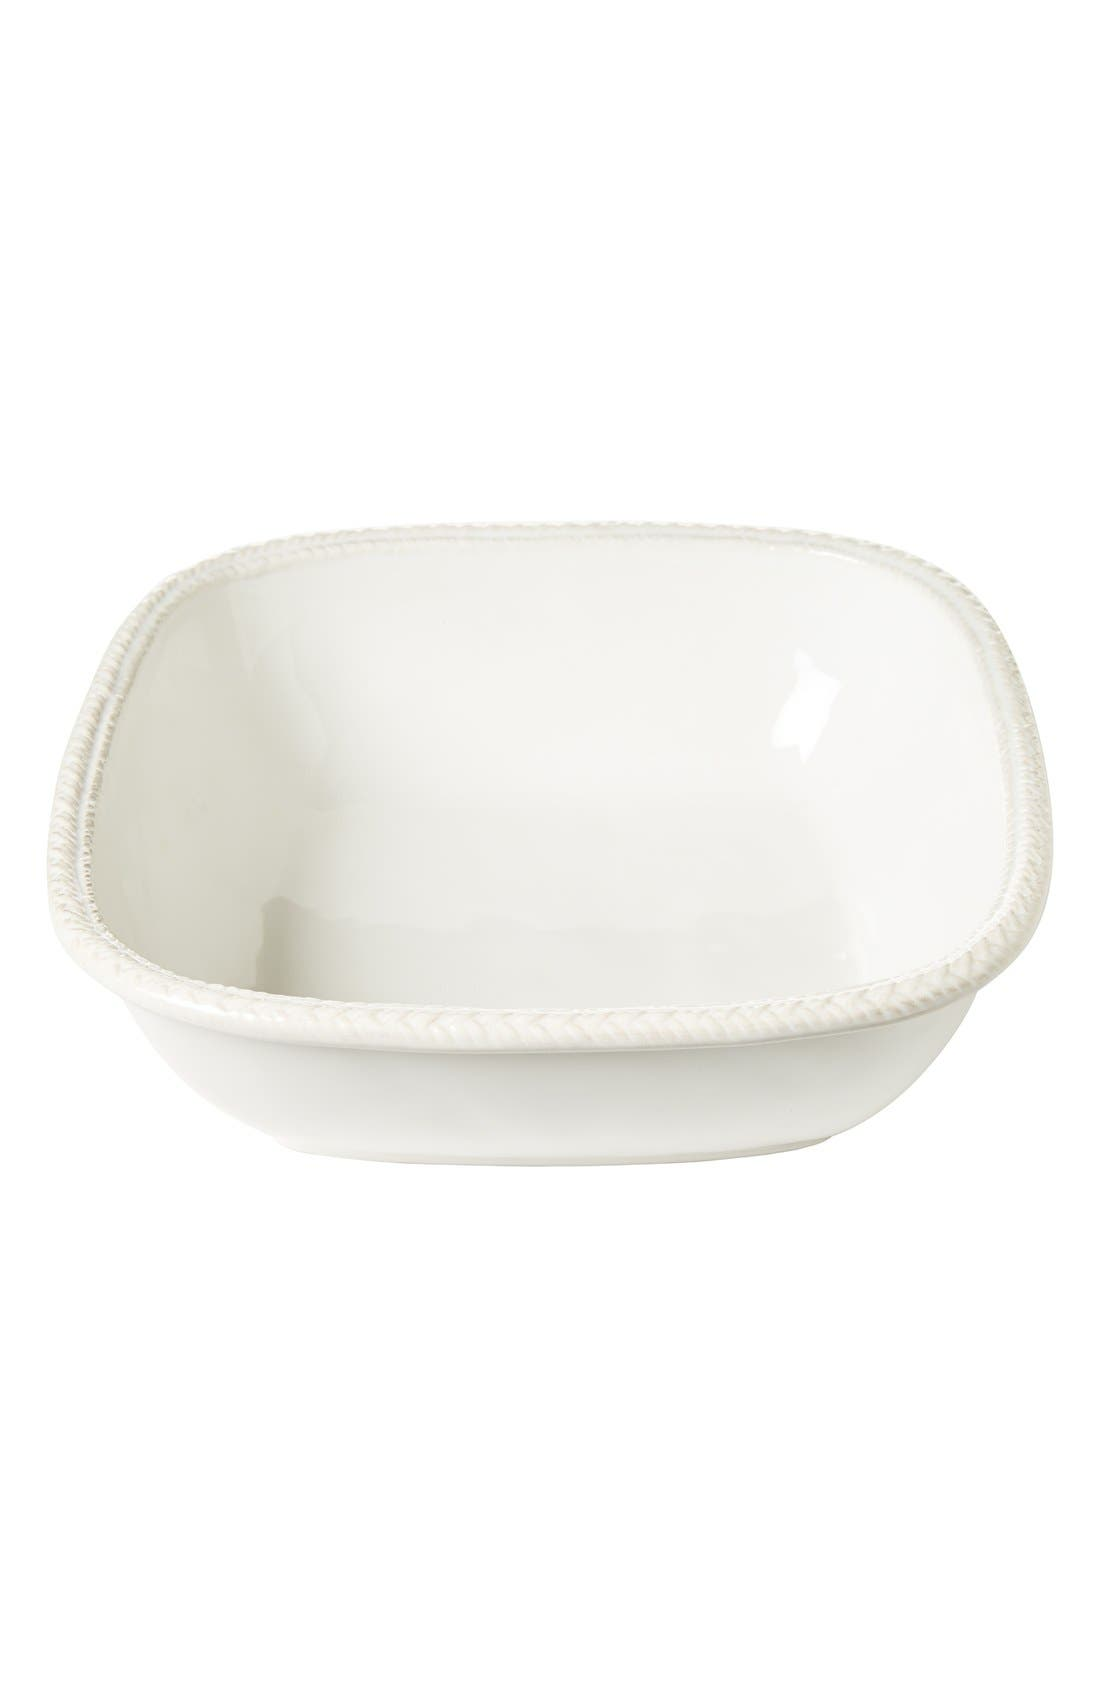 Juliska Le Panier Medium Ceramic Serving Bowl